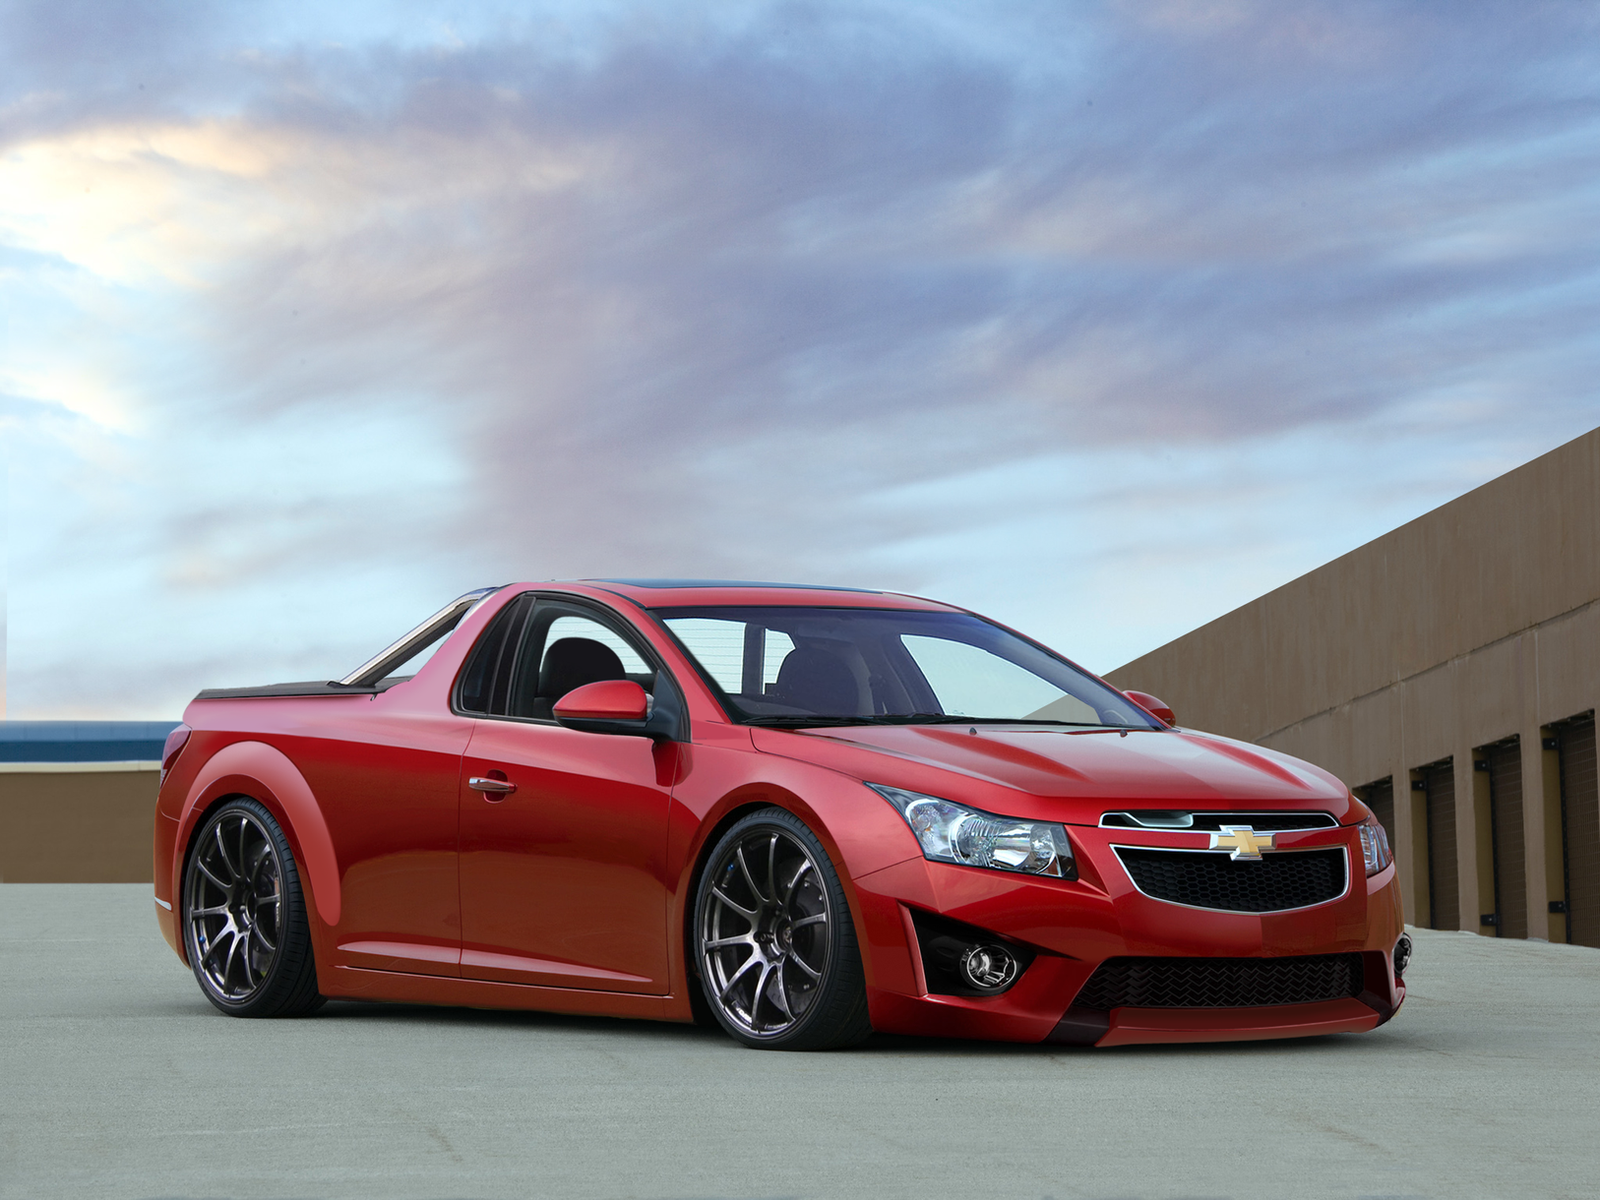 Chevrolet_Cruze_UTE_by_degraafm.png